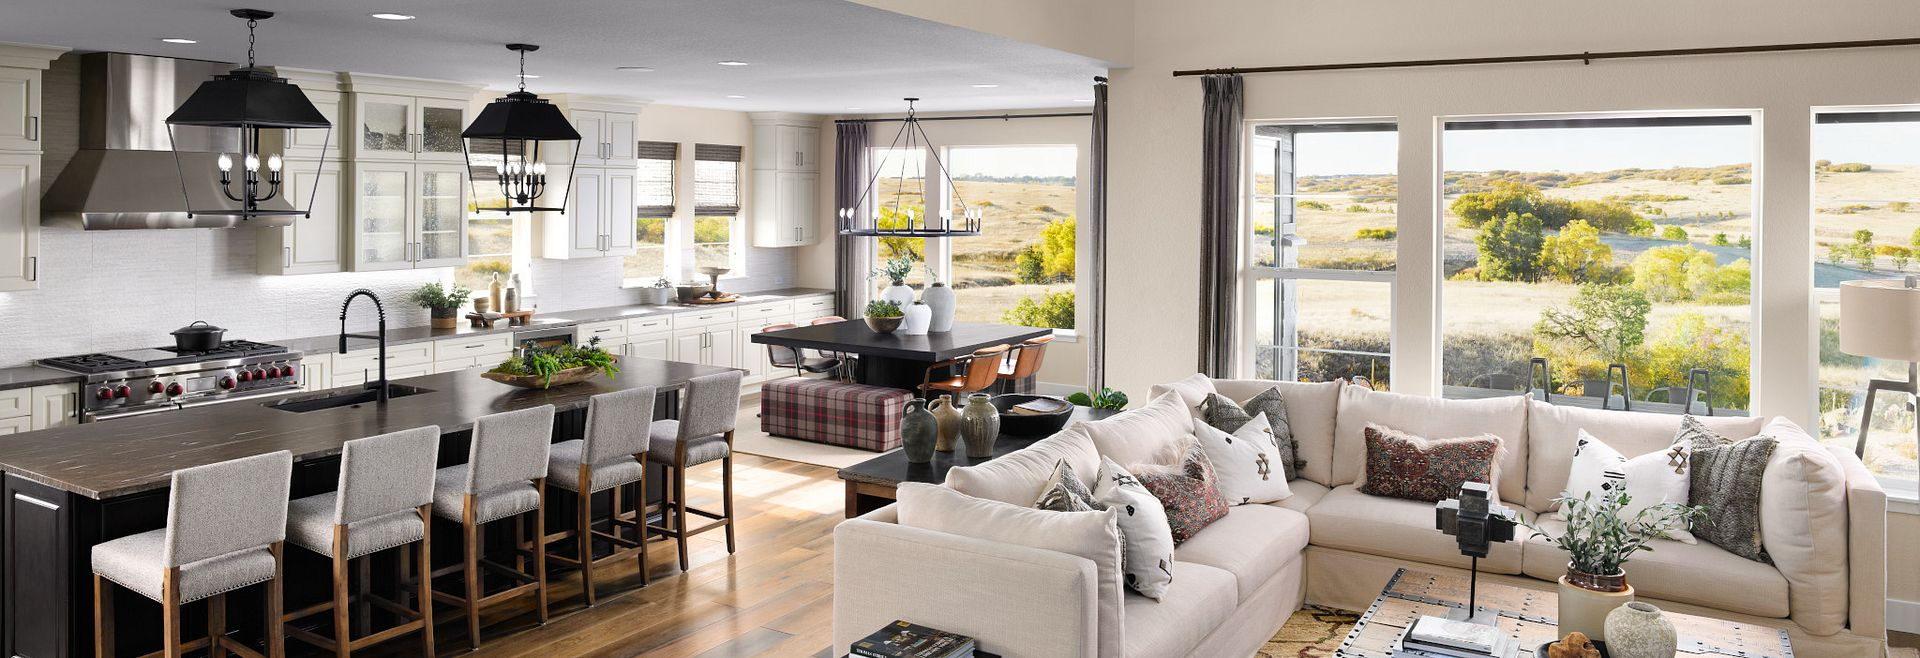 Canyons Luxe Stonehaven Great Room, Kitchen, Dining